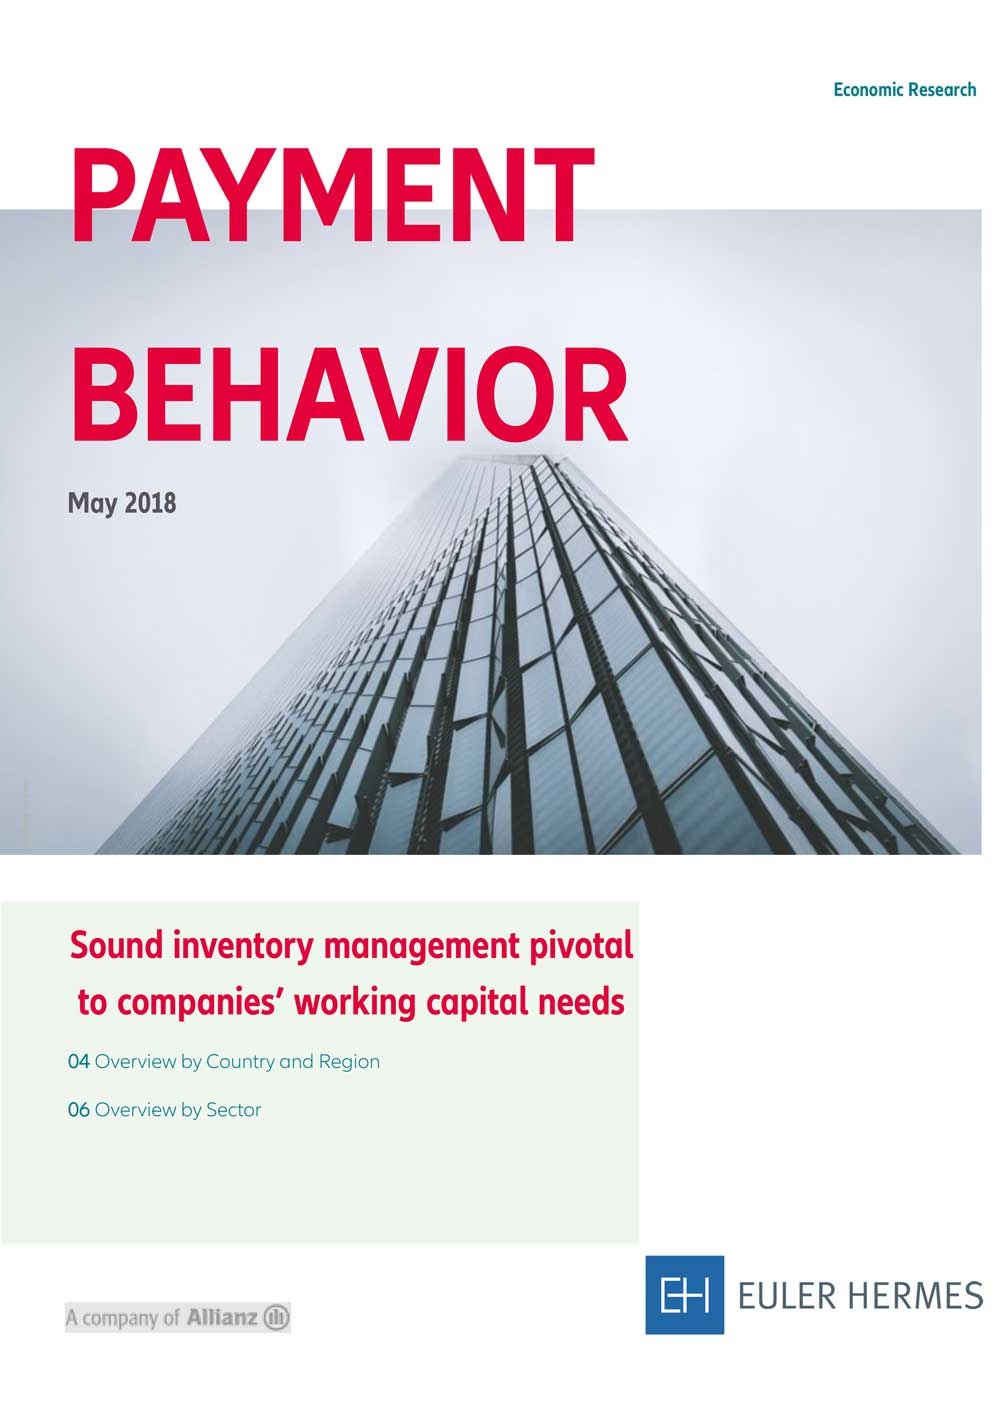 Sound inventory management pivotal to companies' working capital needs